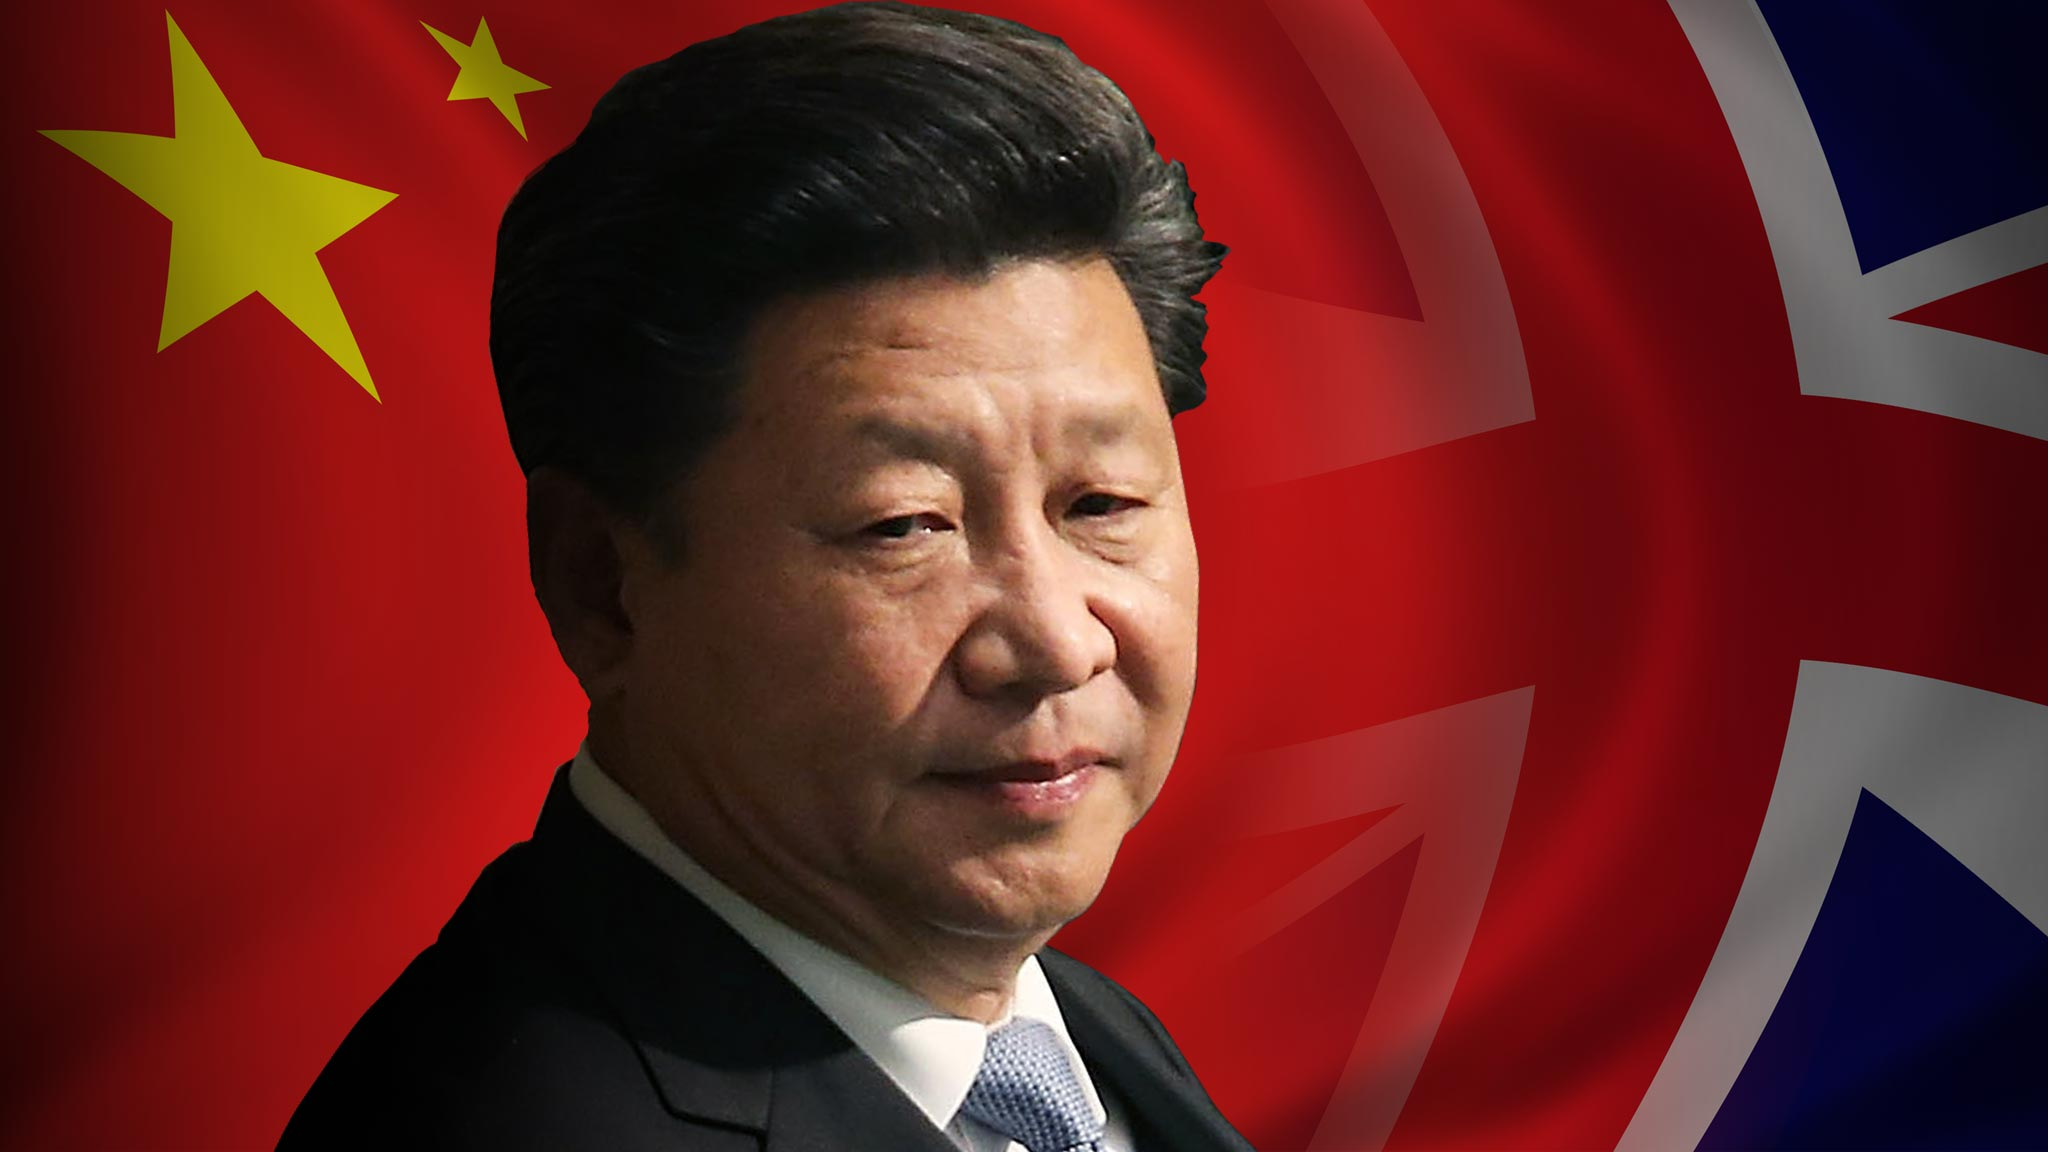 UK is right to roll out the red carpet to Xi Jinping